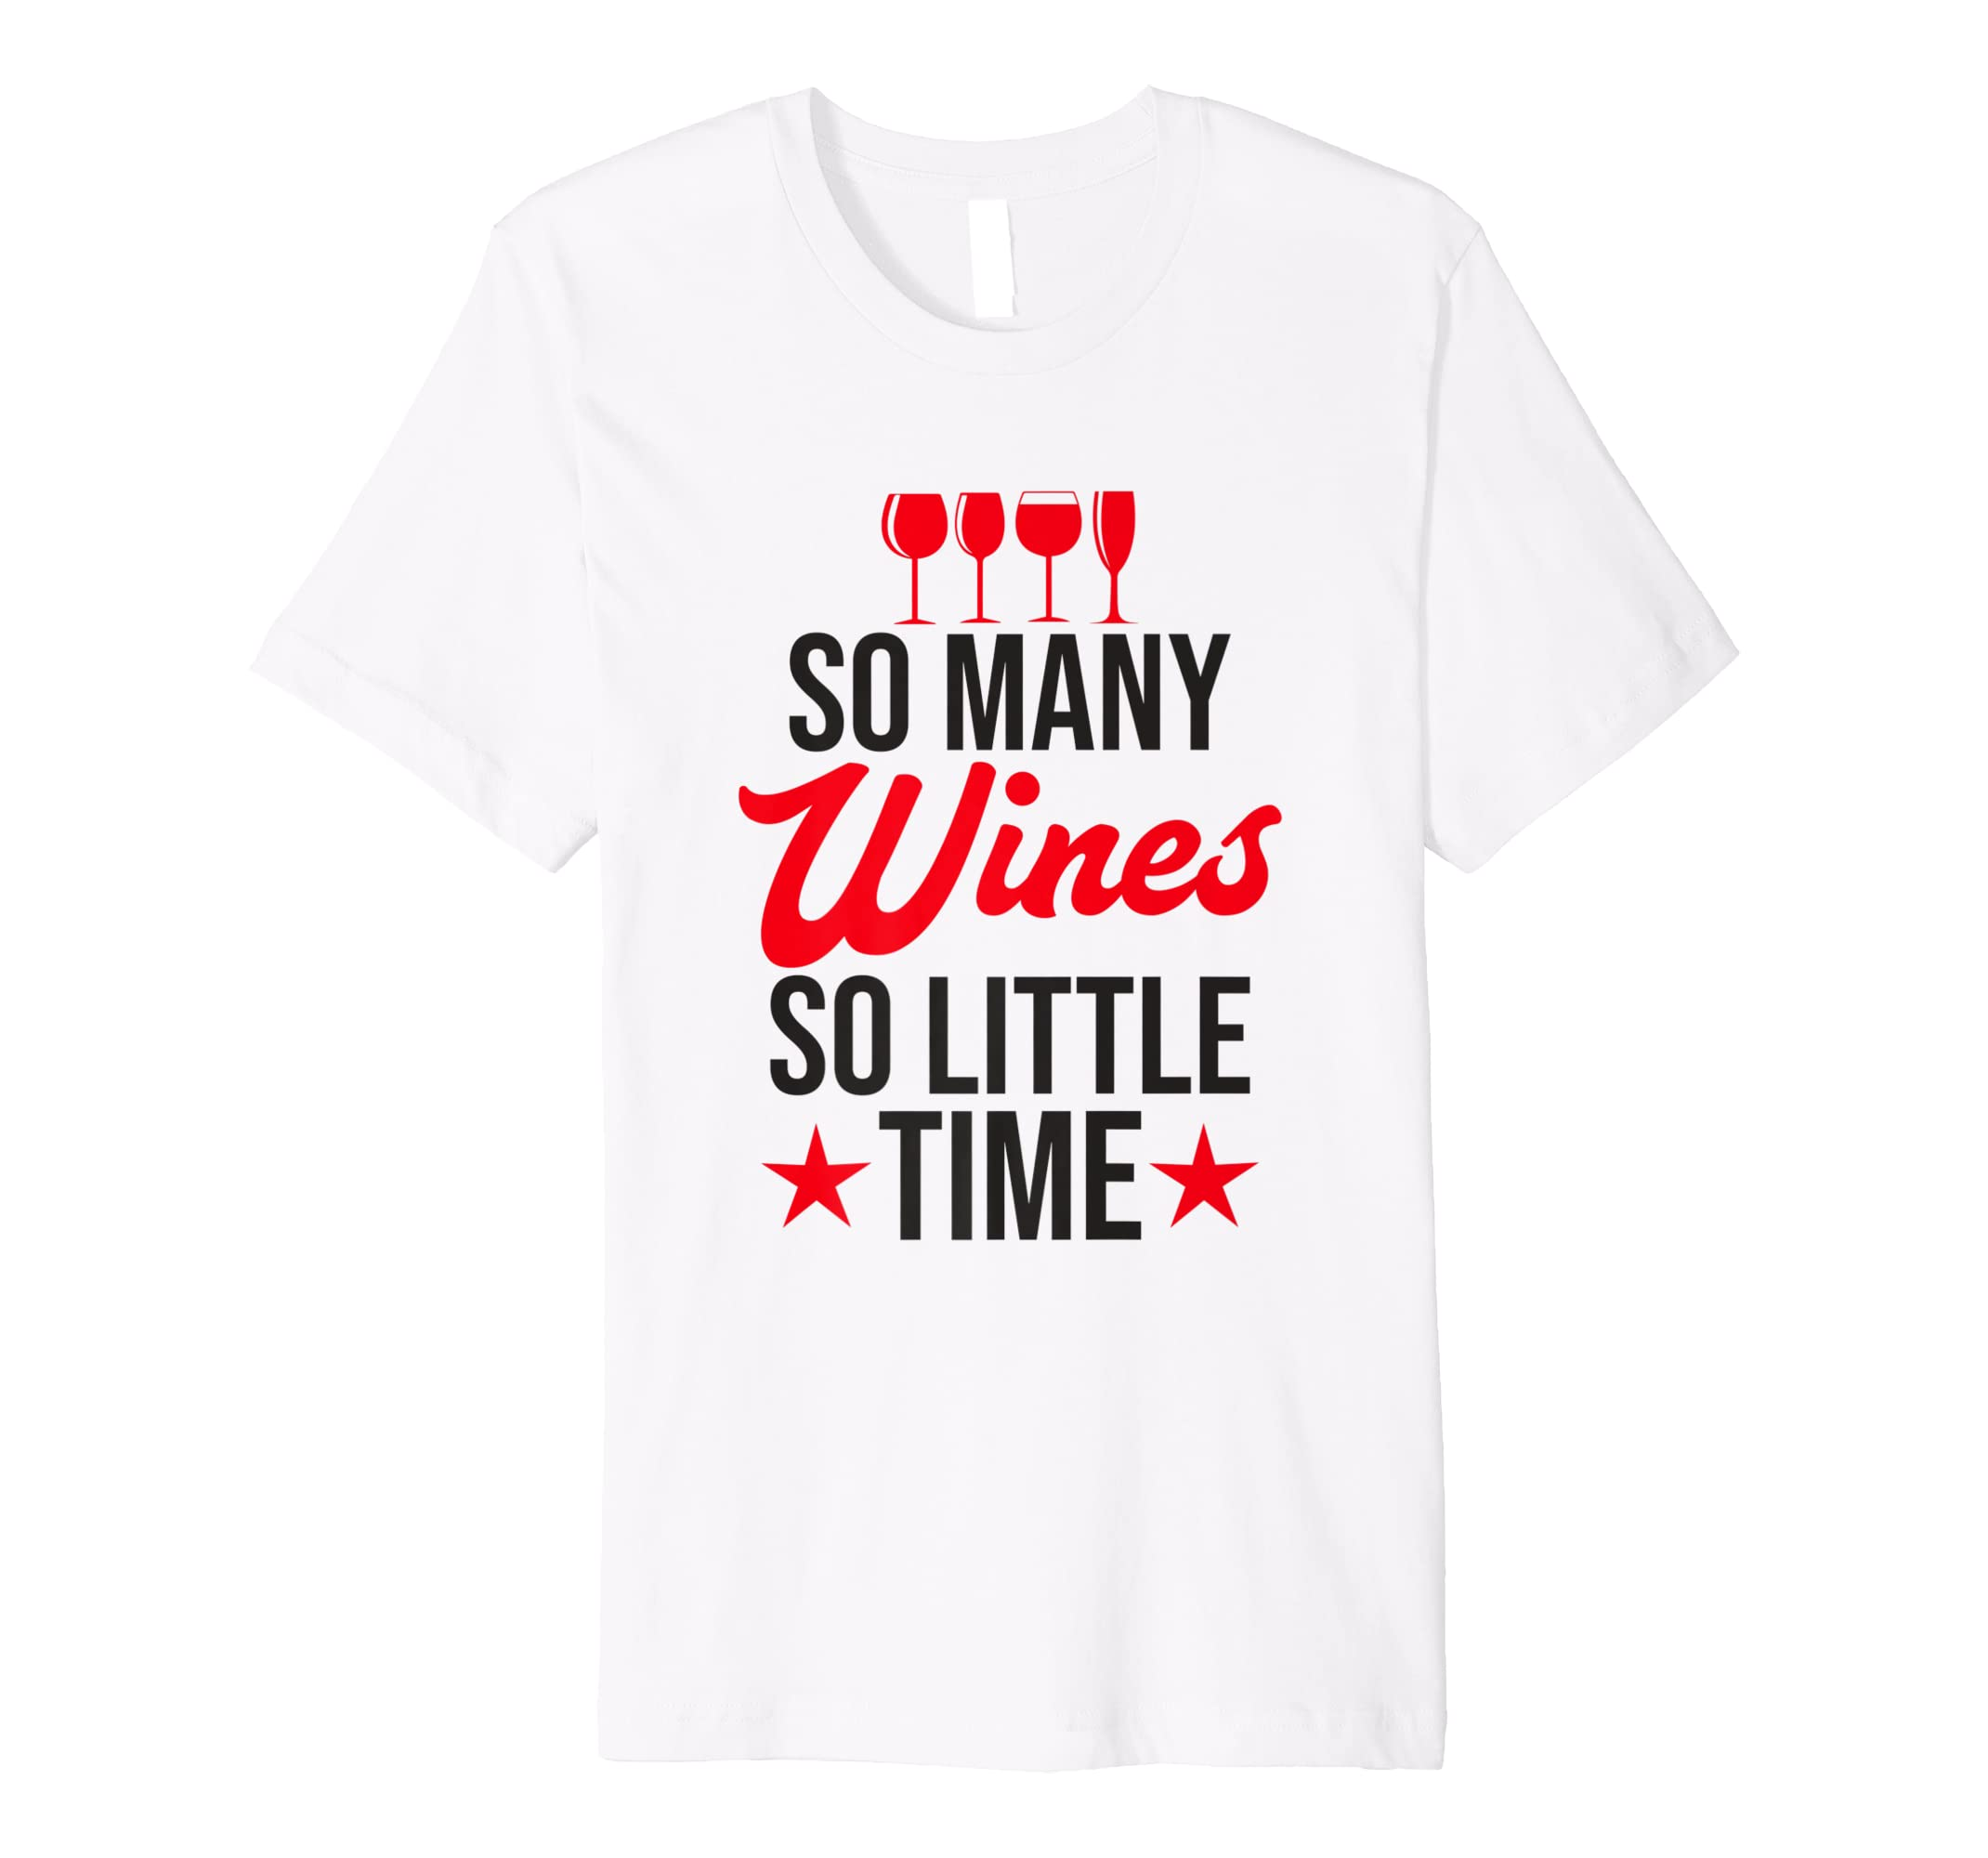 79a1a75ebe8d55 Amazon.com  Alcohol Shirt So Many Wines So Little Time Wine Holiday Gift   Clothing